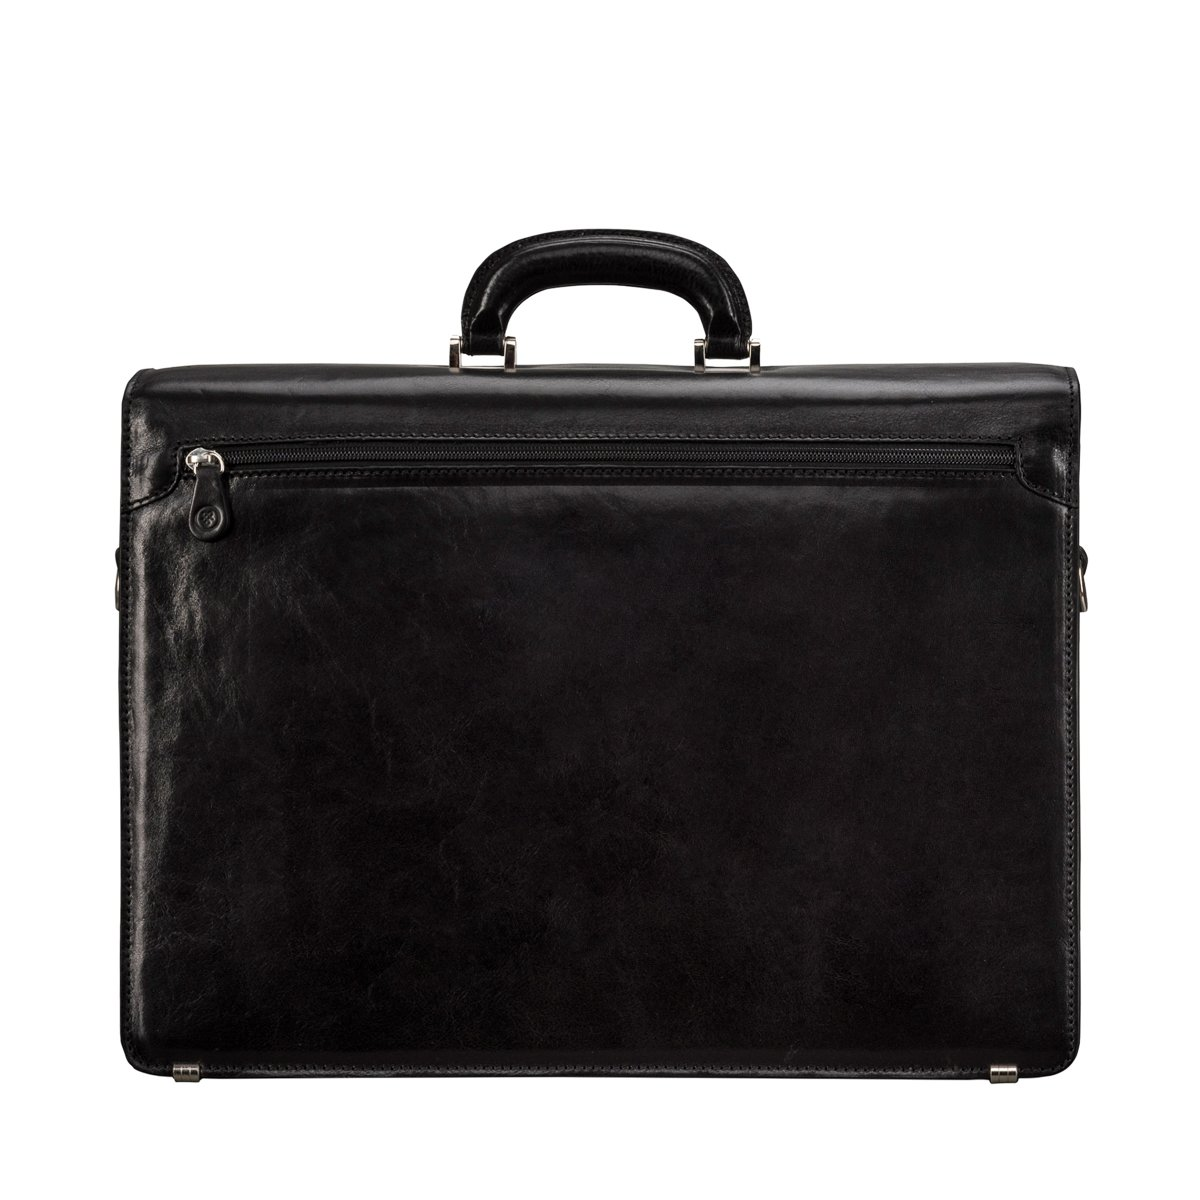 d71b6fa018 Amazon.com   Maxwell Scott Luxury Black Handmade Leather Briefcase (The  Tomacelli 2 section)   Luggage & Travel Gear